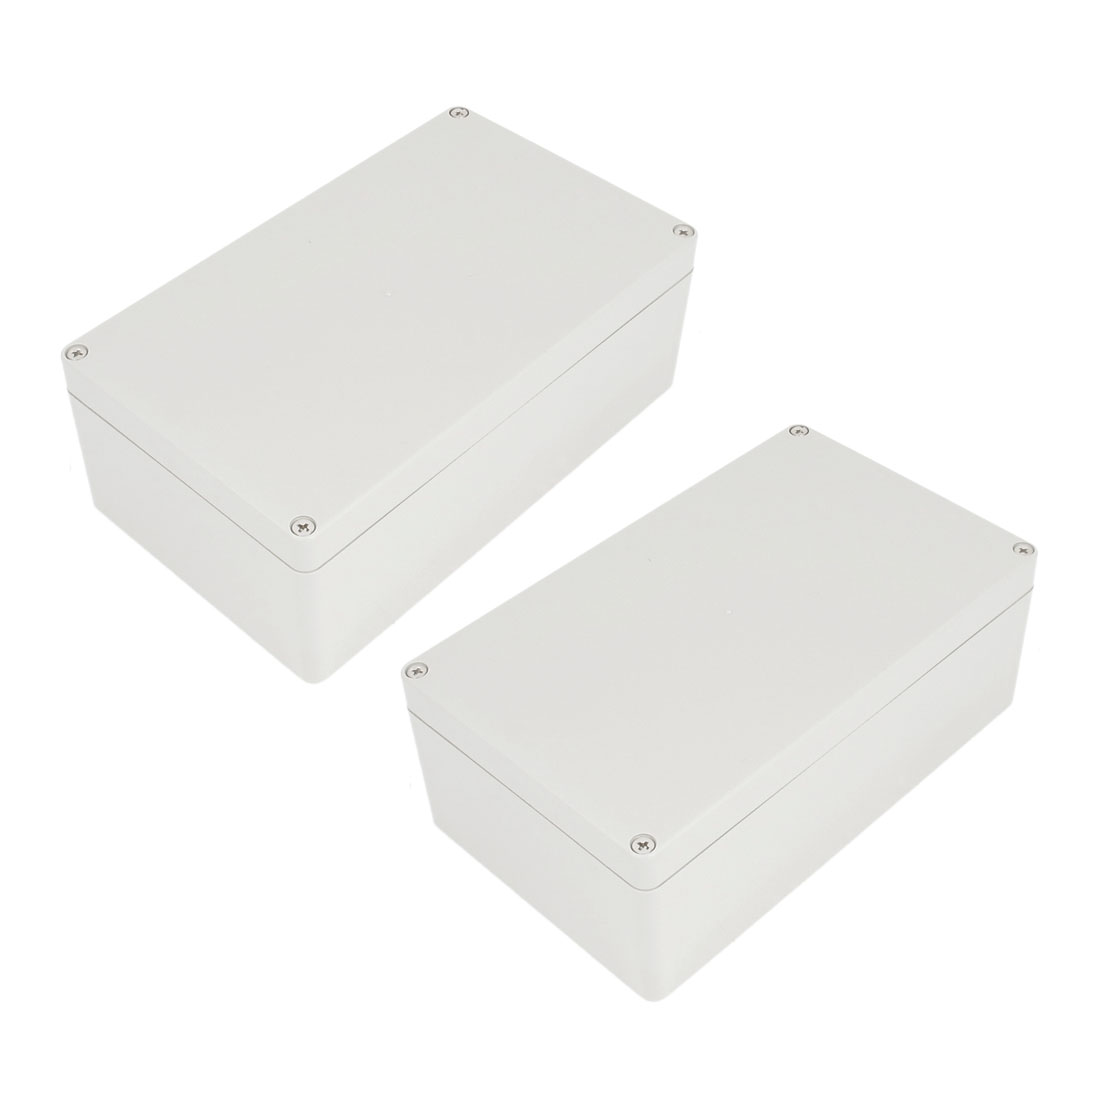 2 Pcs Plastic Mounted Power Protective Case Junction Box 199 x 119 x 74mm